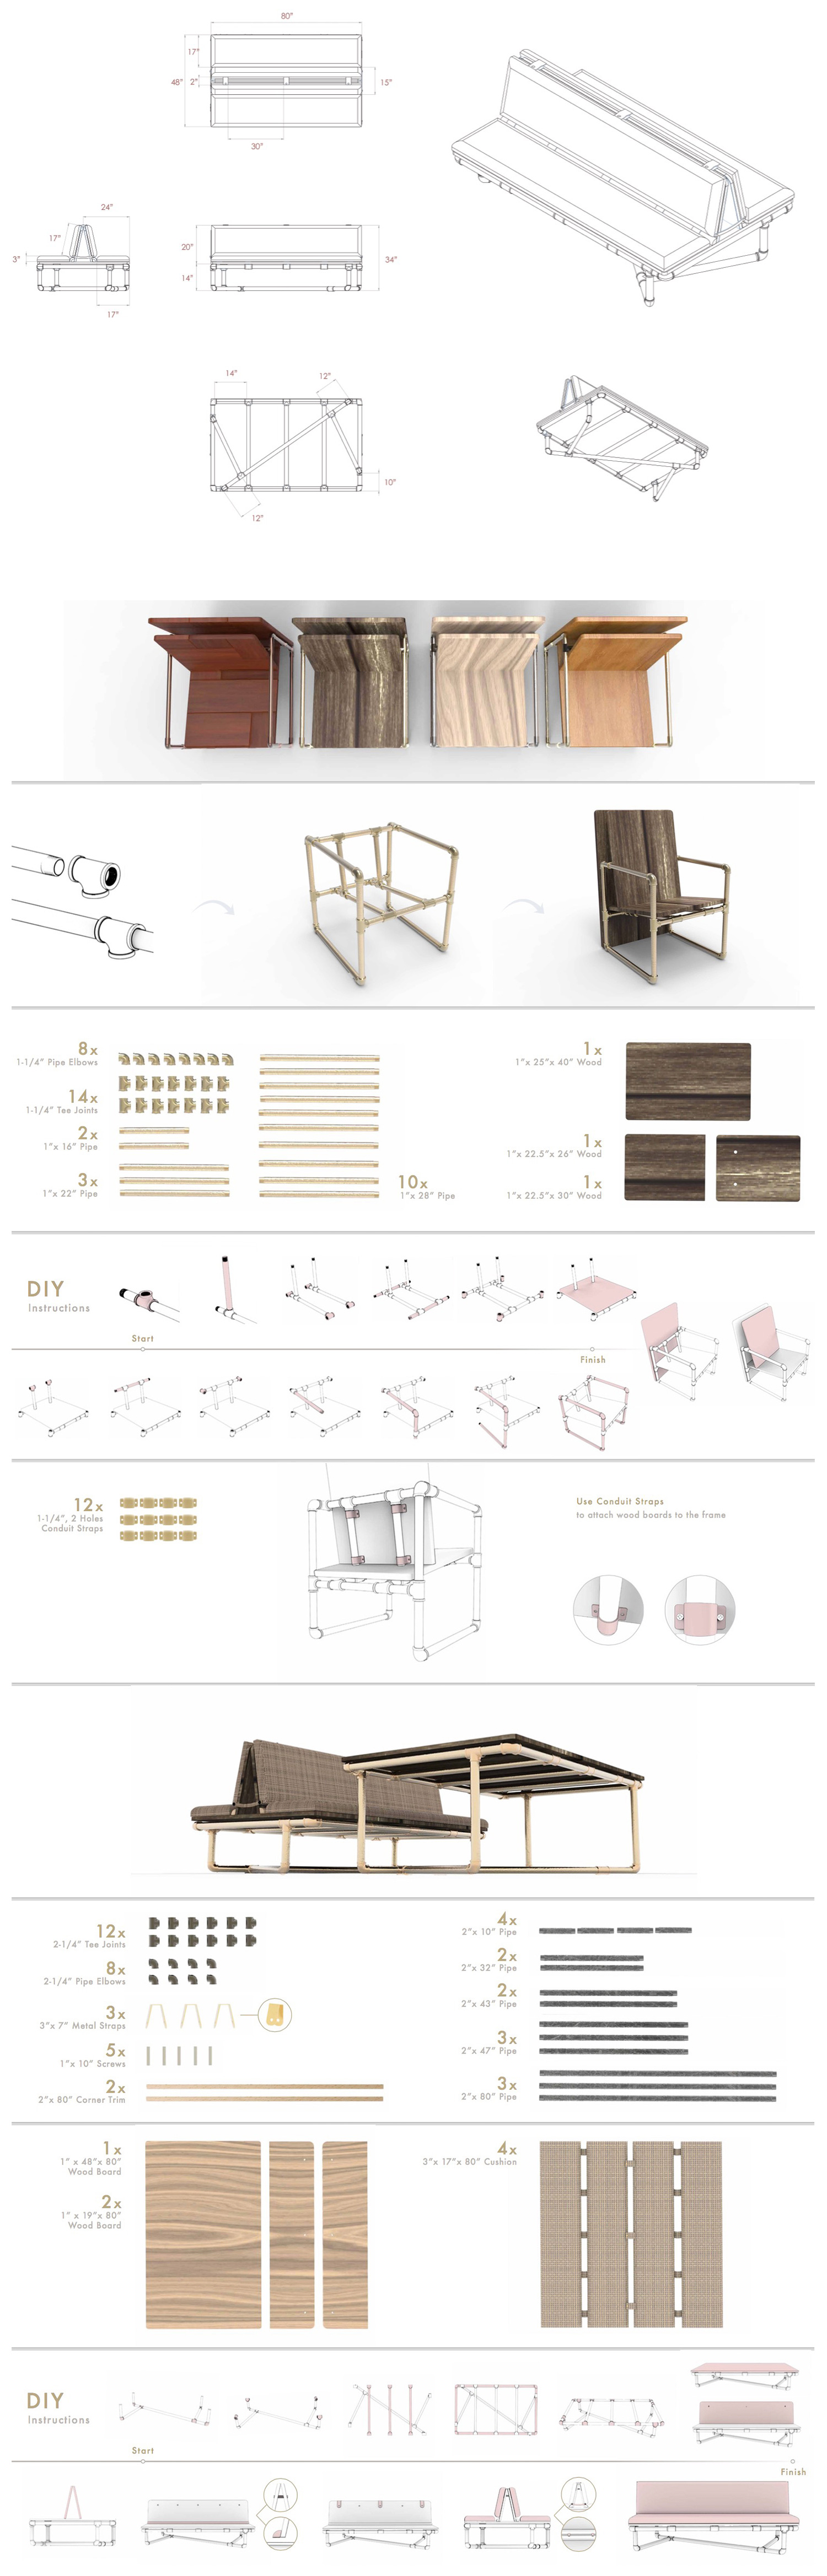 Shelving Systems For